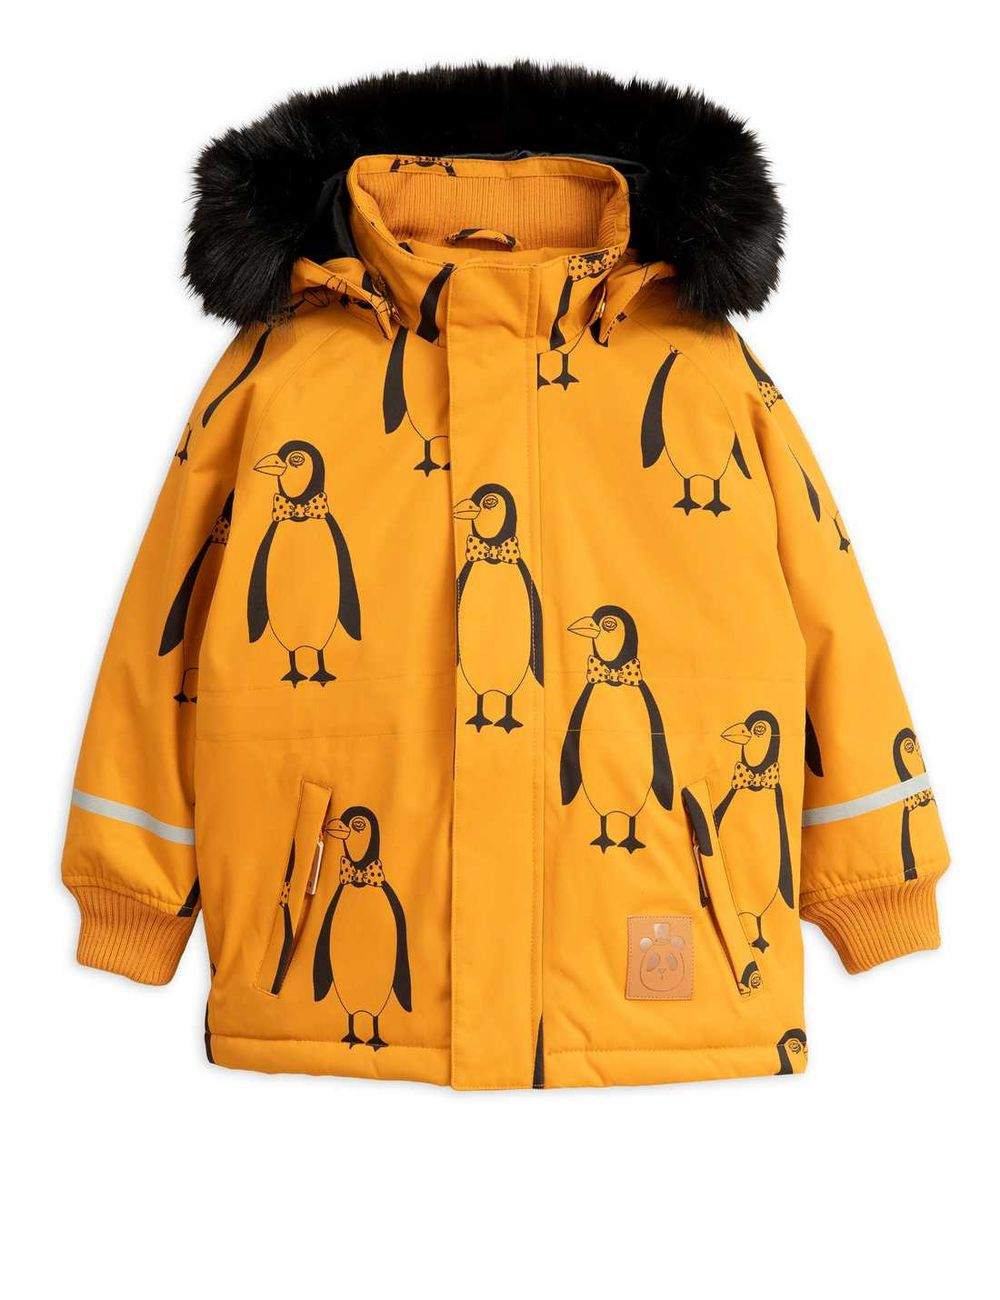 MINI RODINI K2 PENQUIN PARKA, BROWN